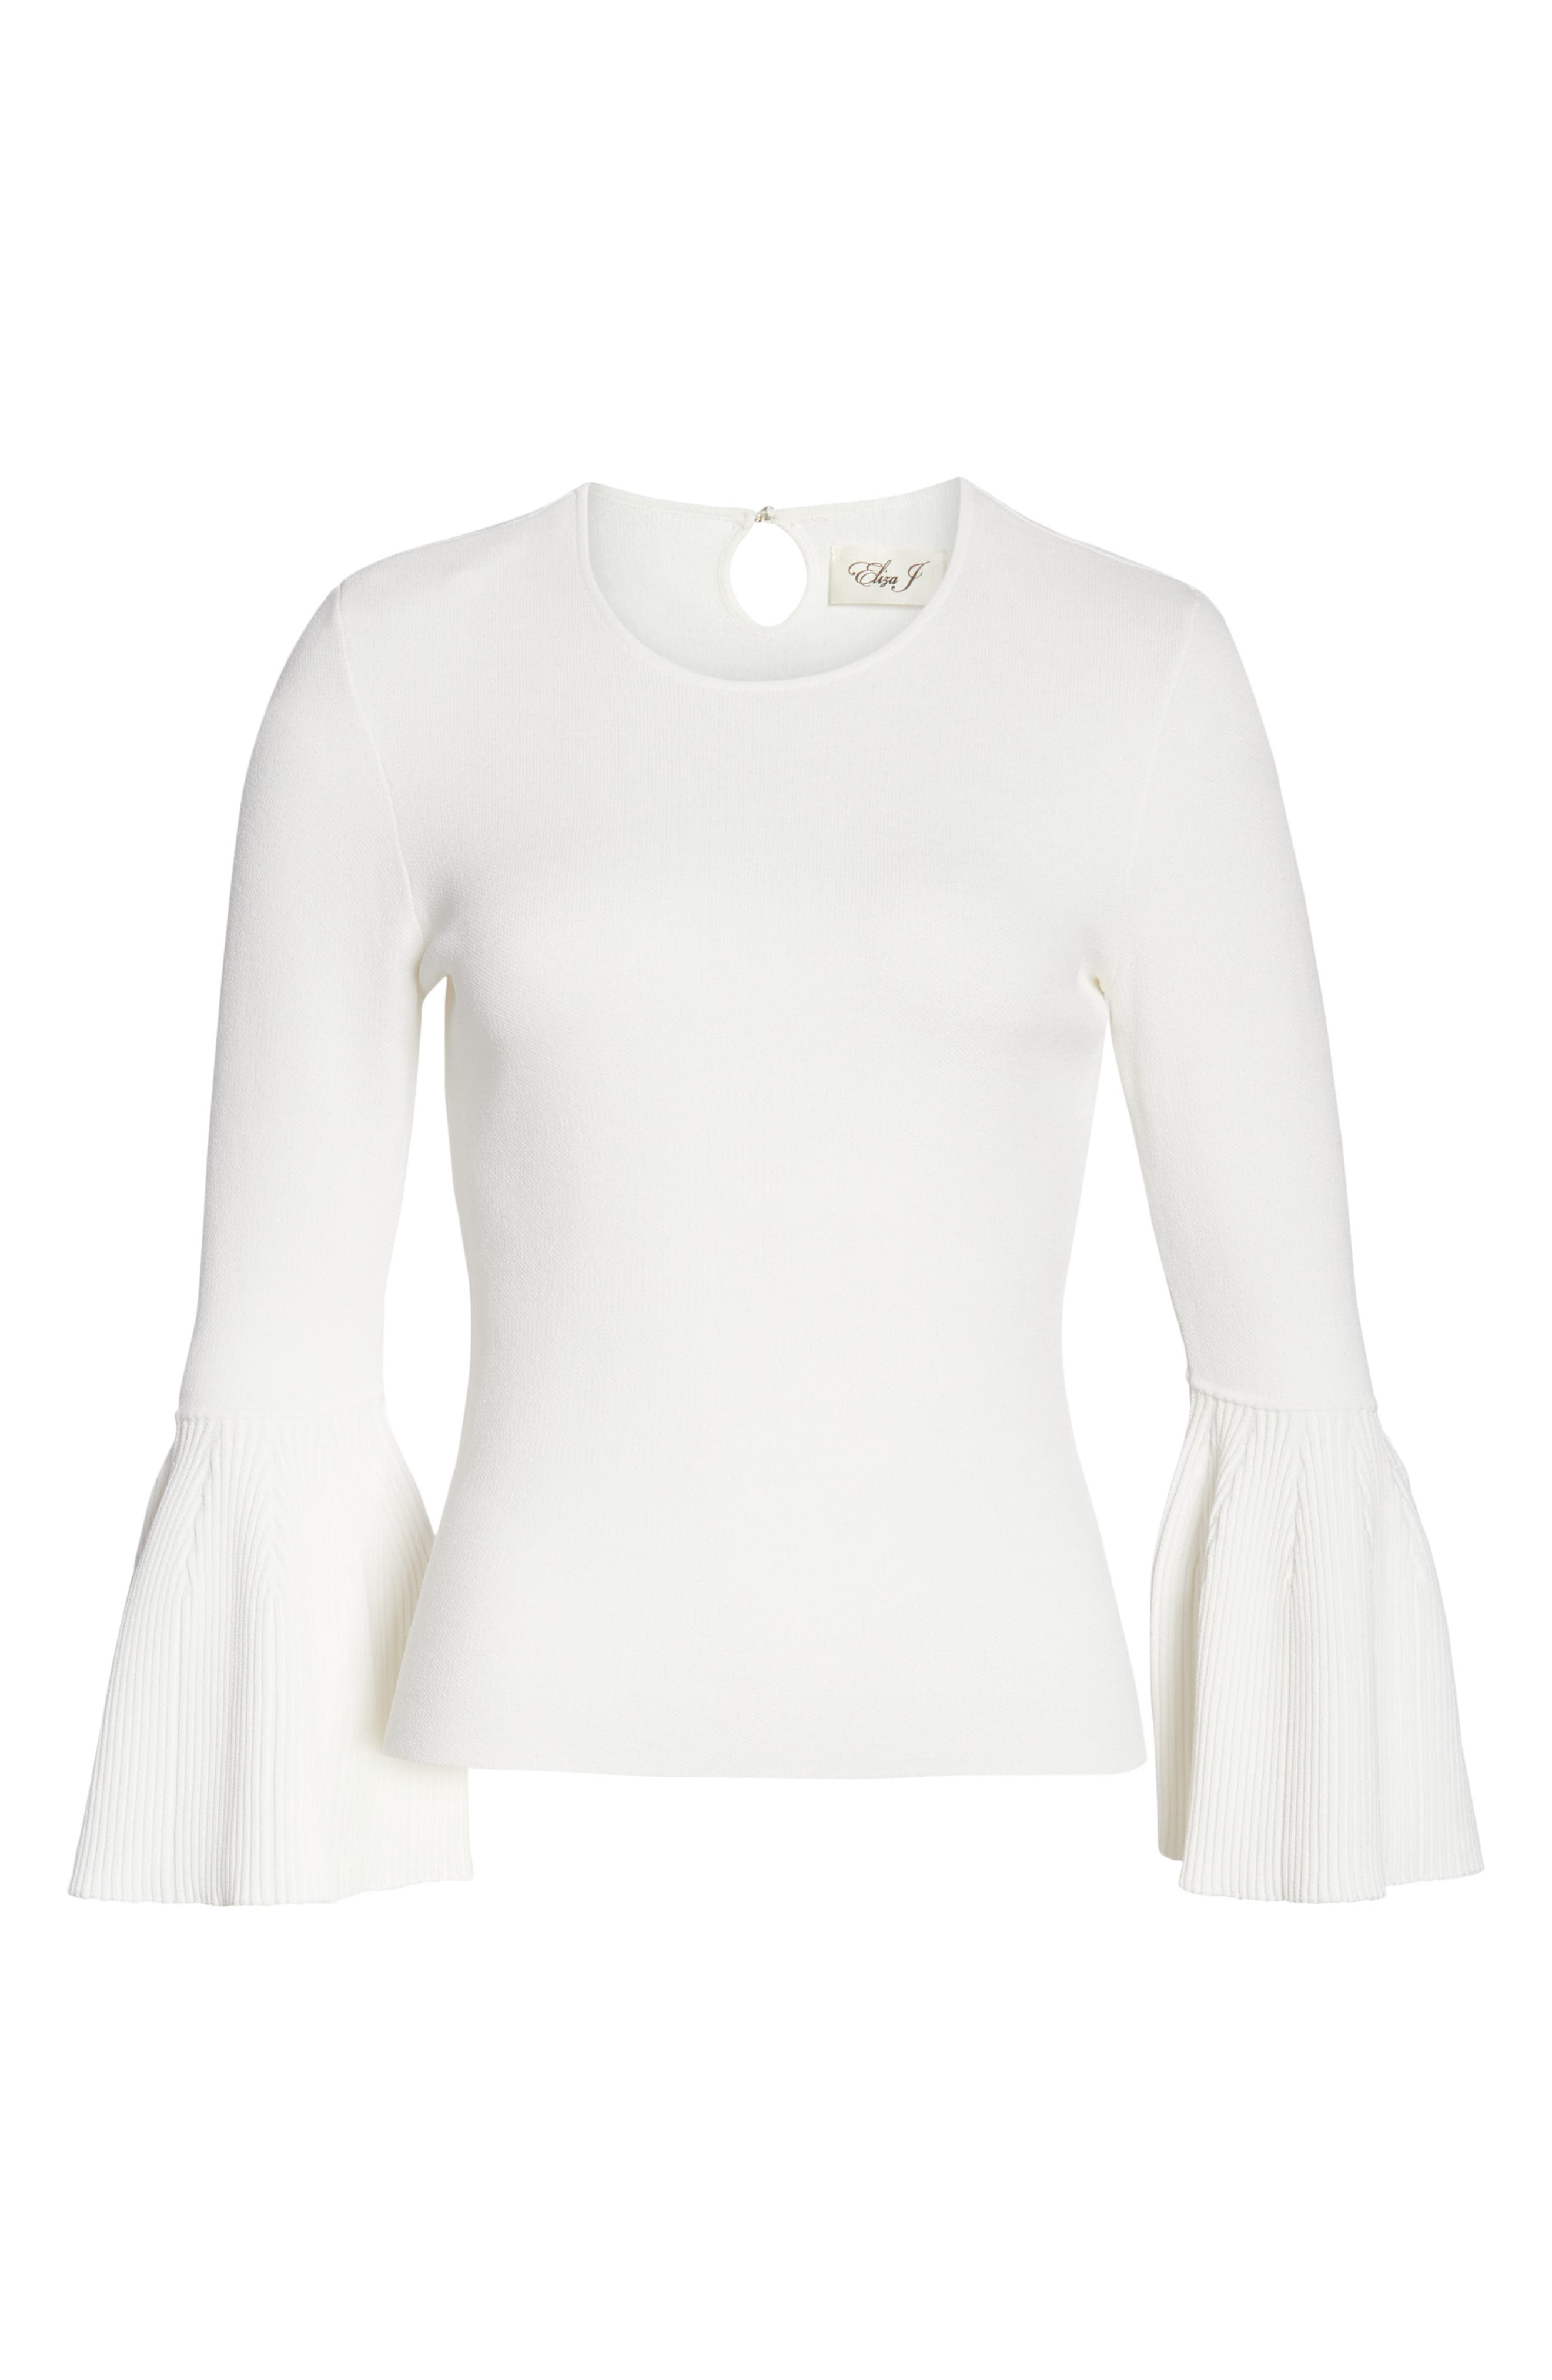 Bell Cuff Jewel Neck Sweater,                             Alternate thumbnail 7, color,                             IVORY